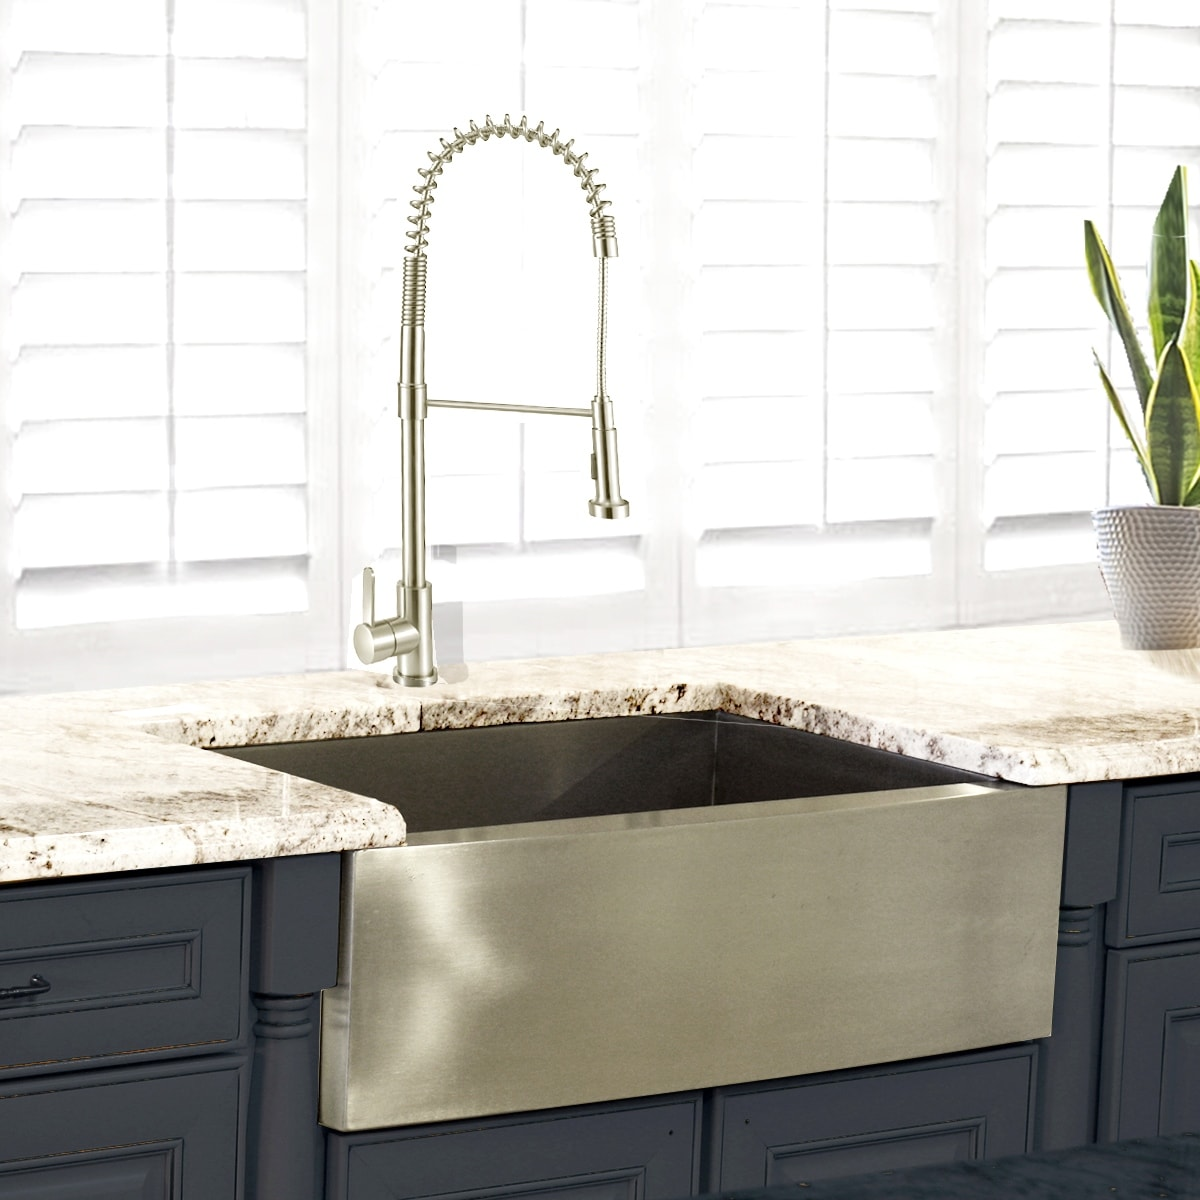 Stainless Steel 30 Inch Farmhouse Apron Sink Overstock 5209544